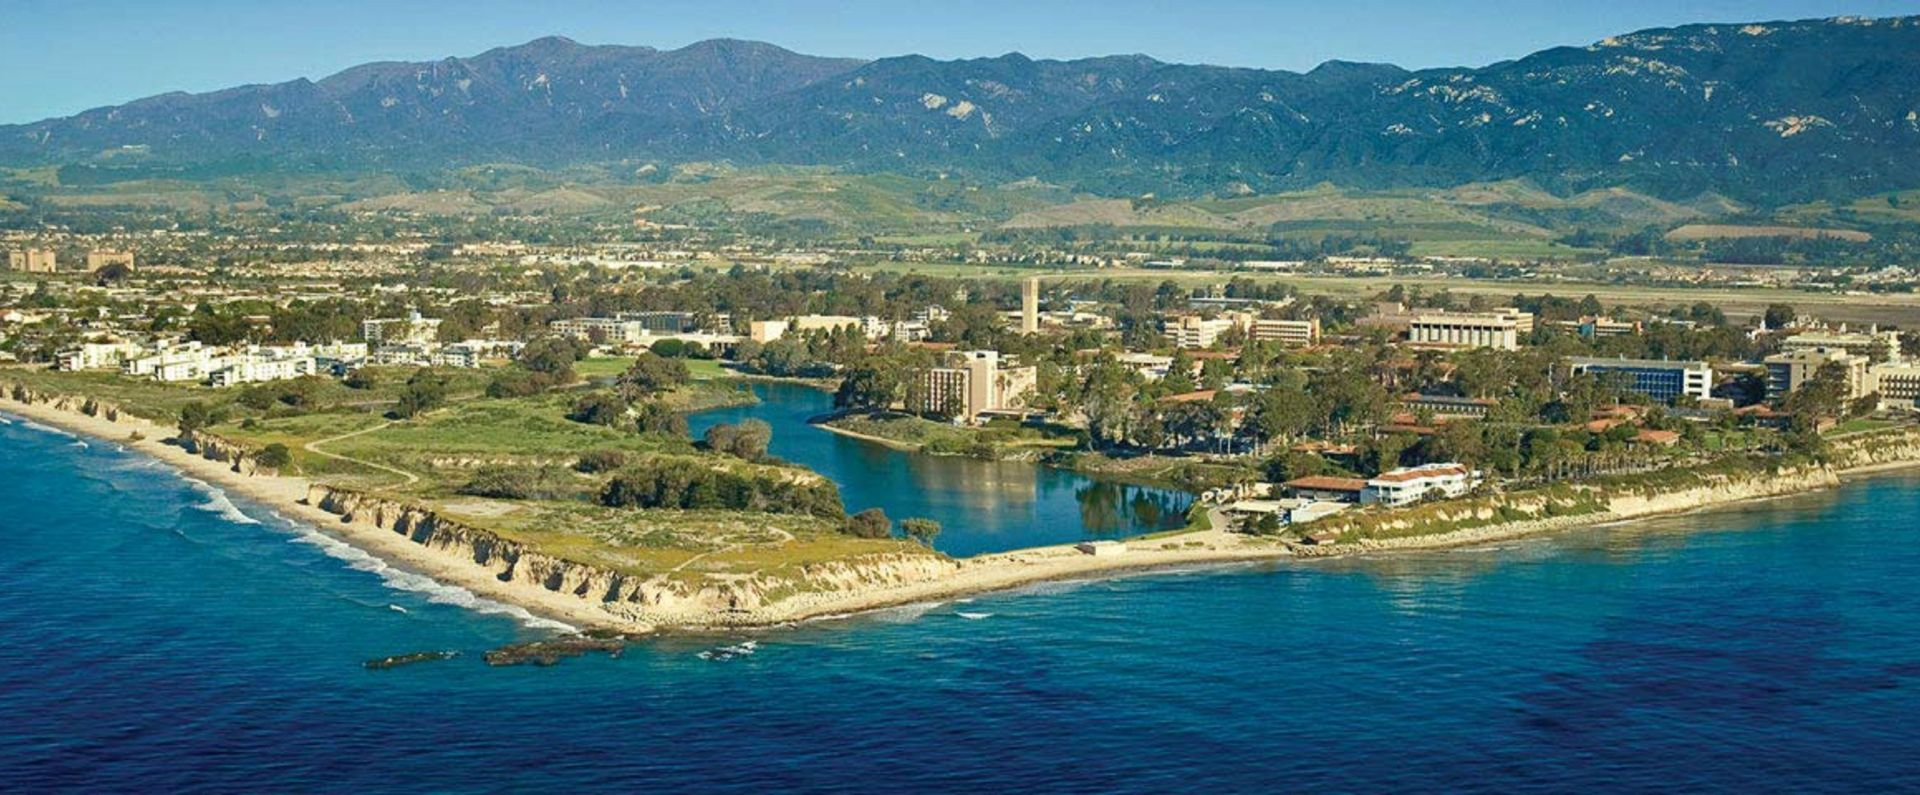 Aerial View of University of California, Santa Barbara